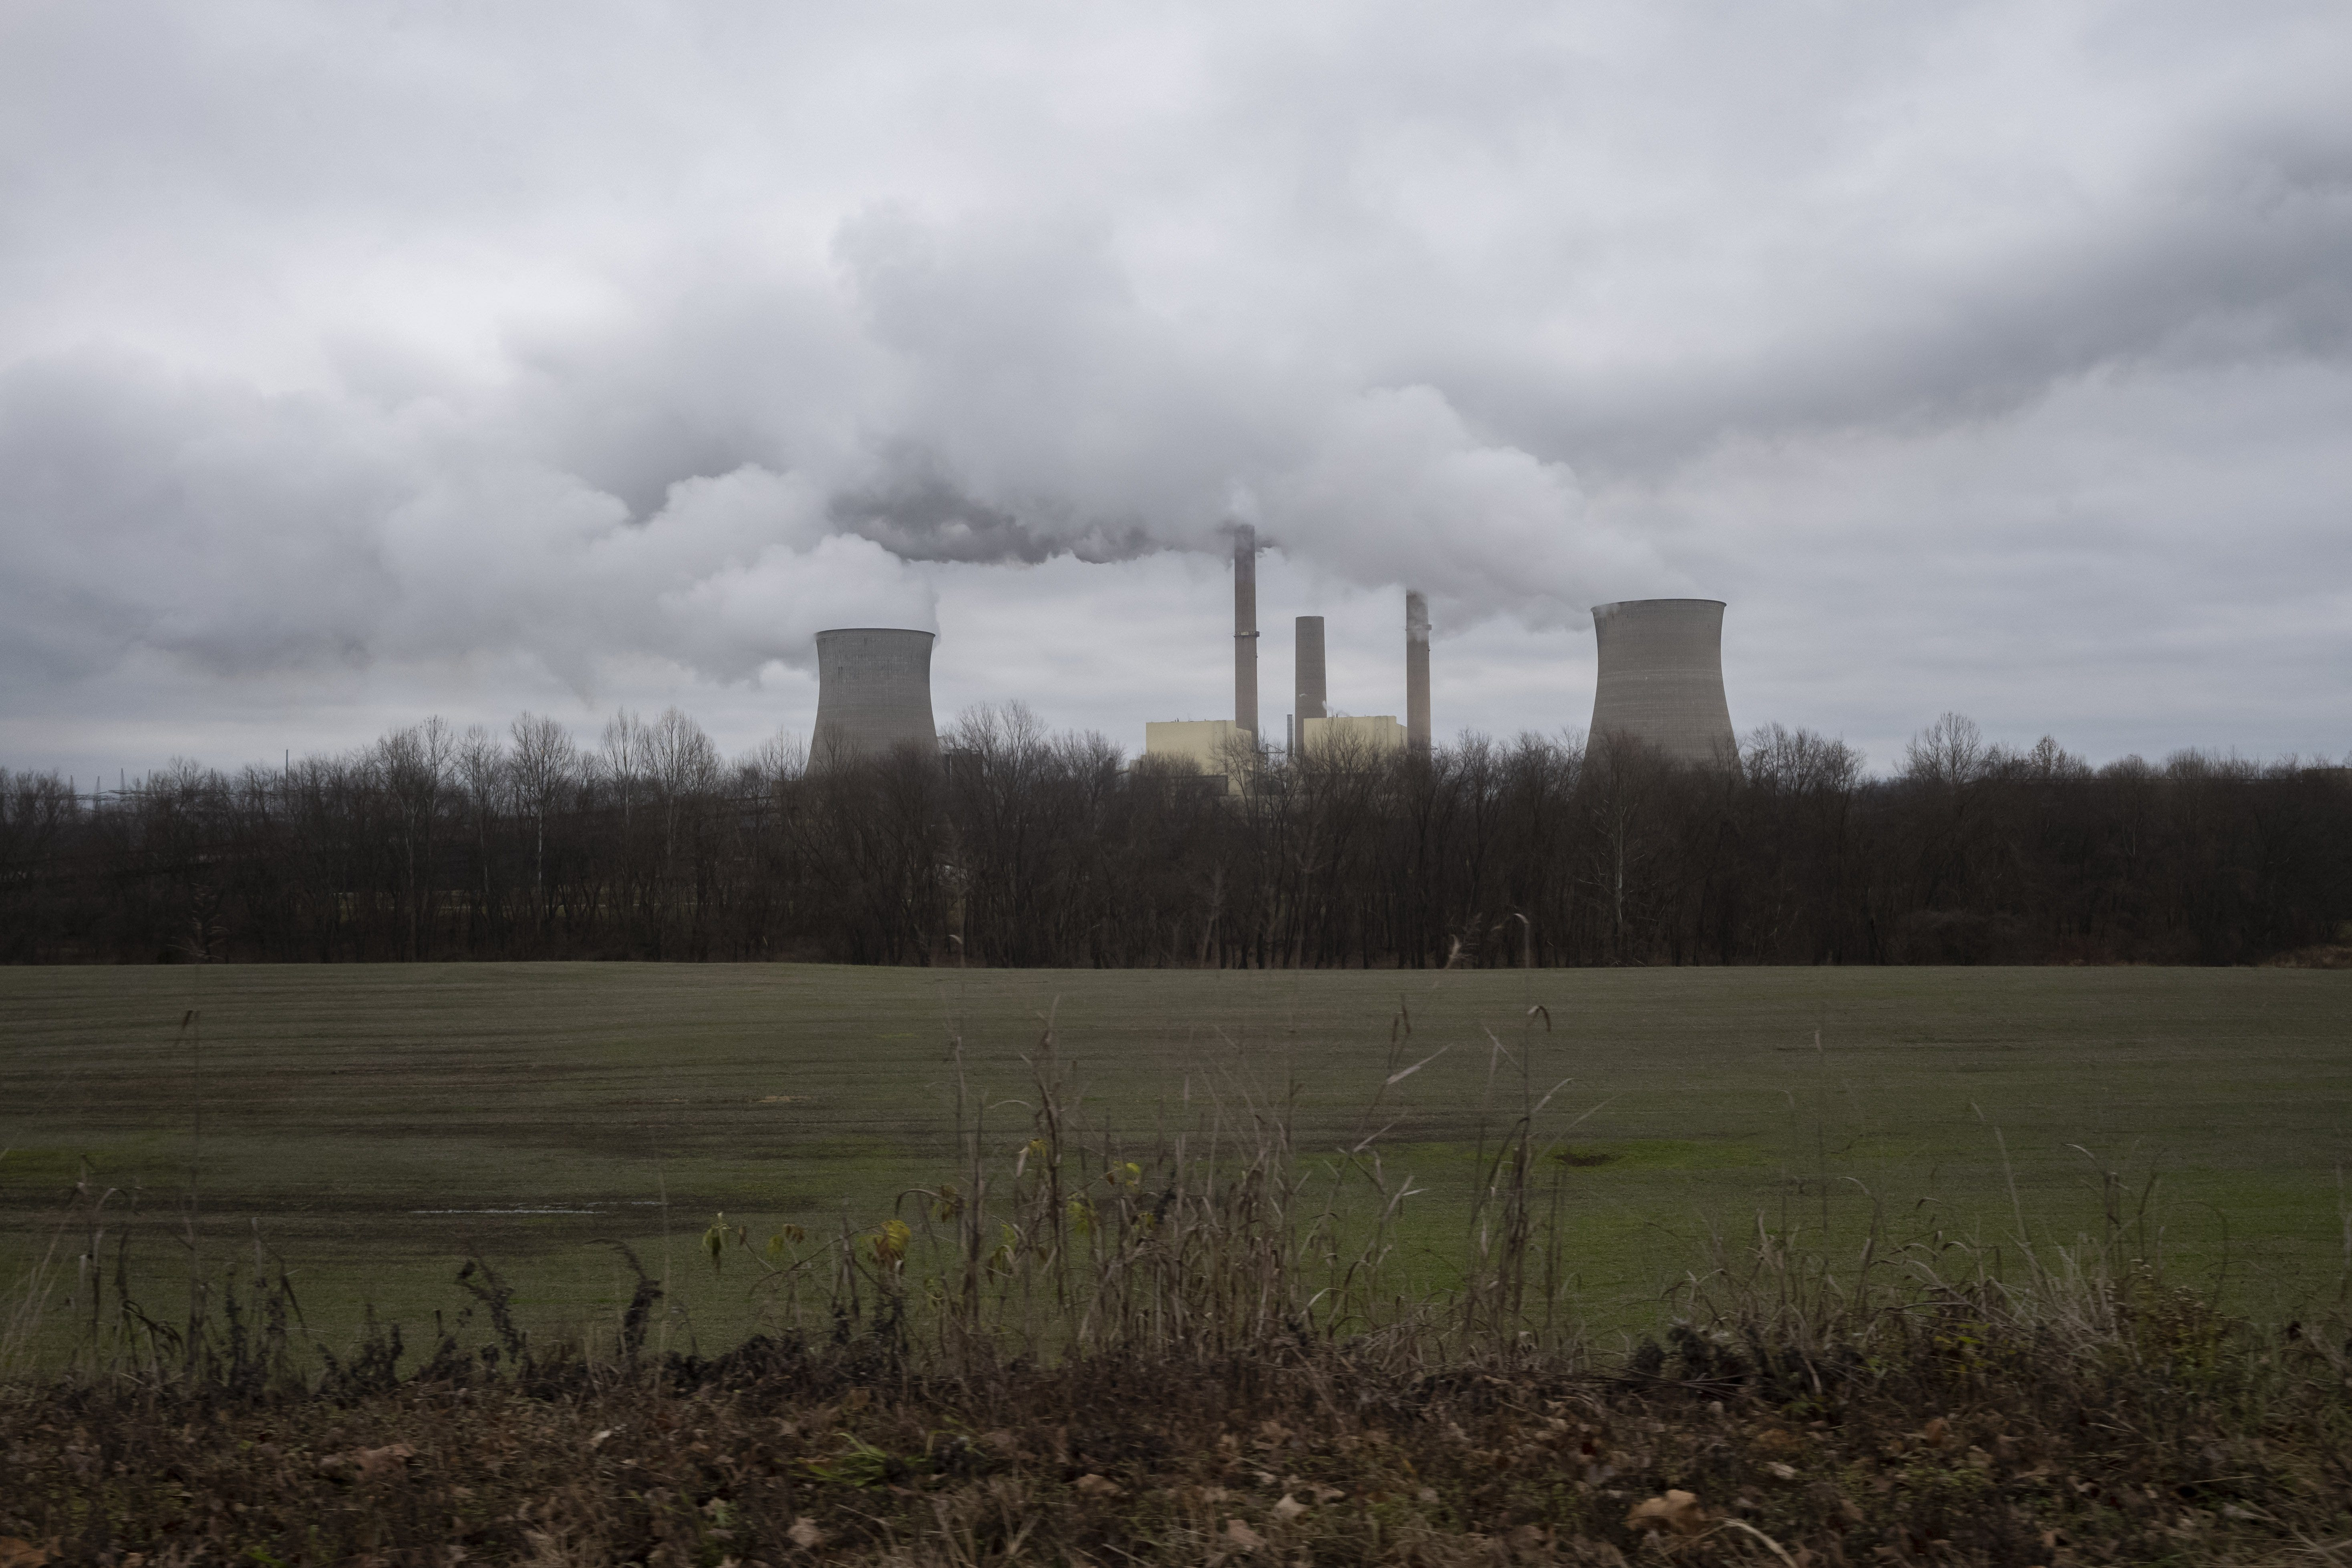 The James M. Gavin Power Plant in Cheshire, Ohio, the nation's largest coal-fired plant, is reaching the end of its useful life.